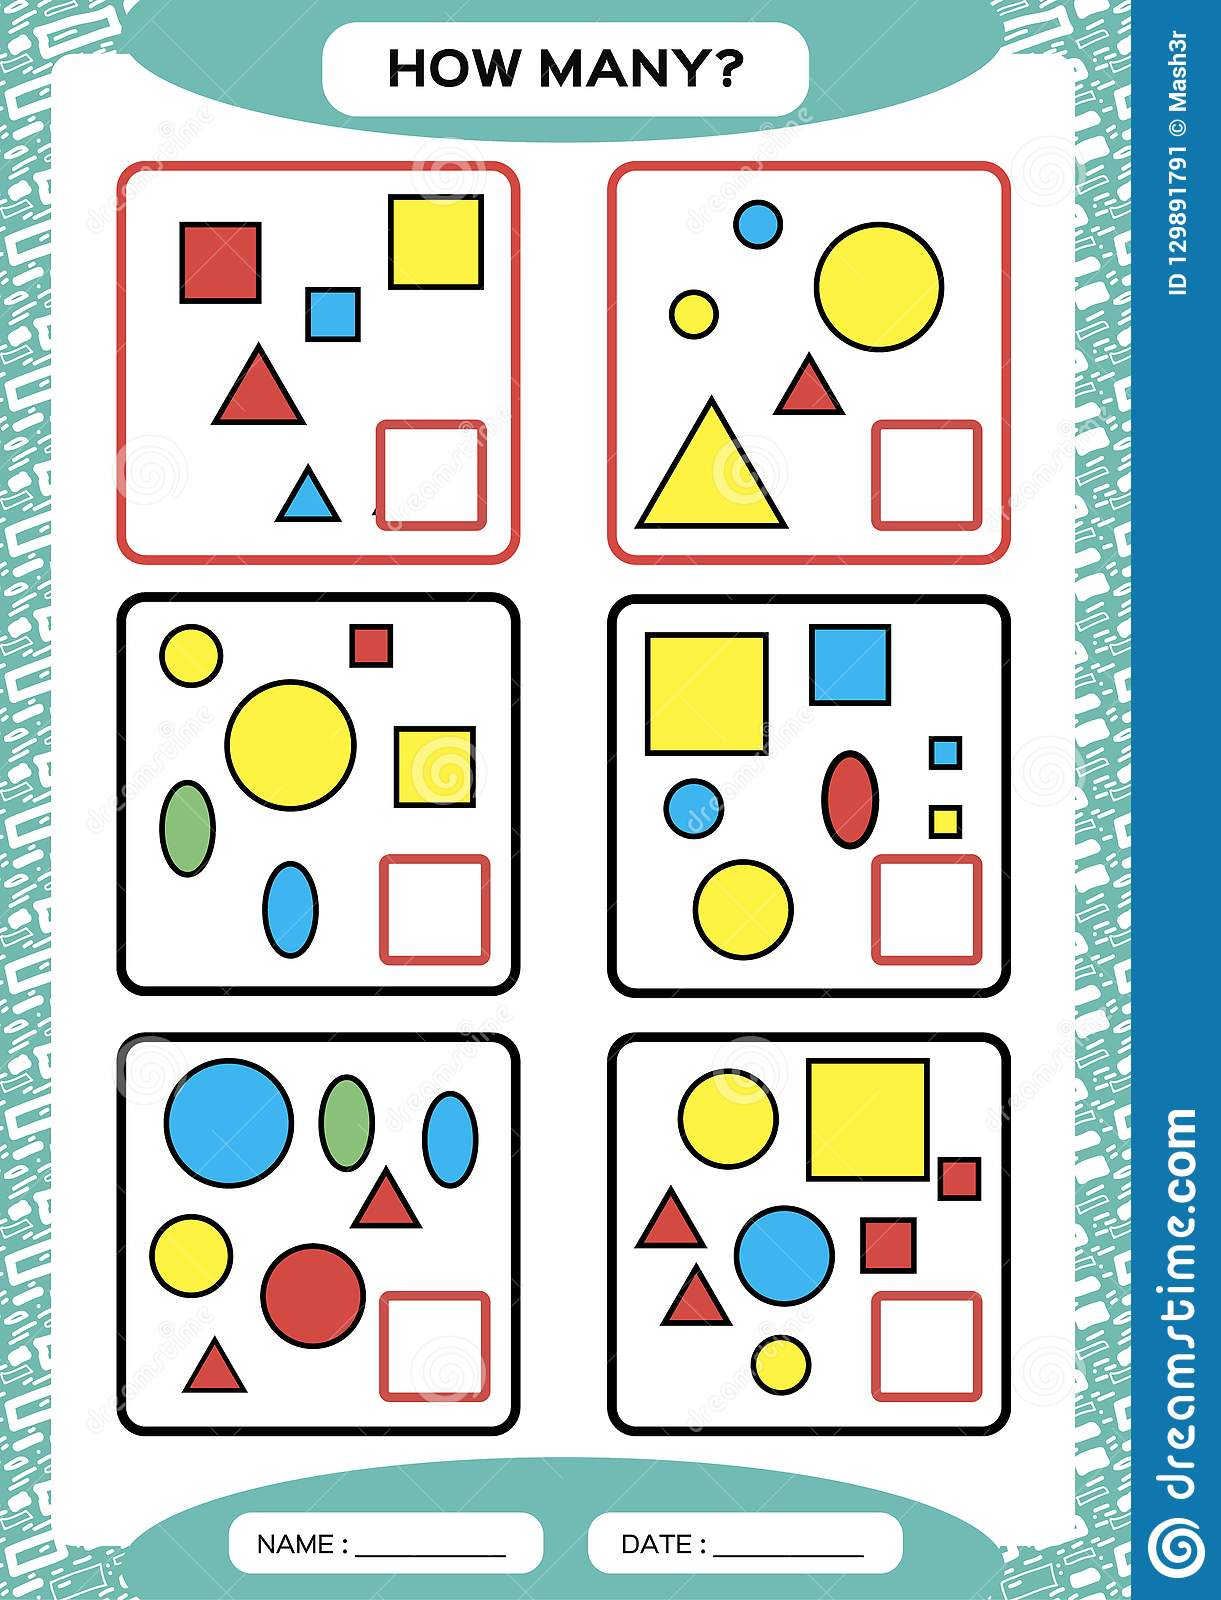 How Many Counting Game For Preschool Children